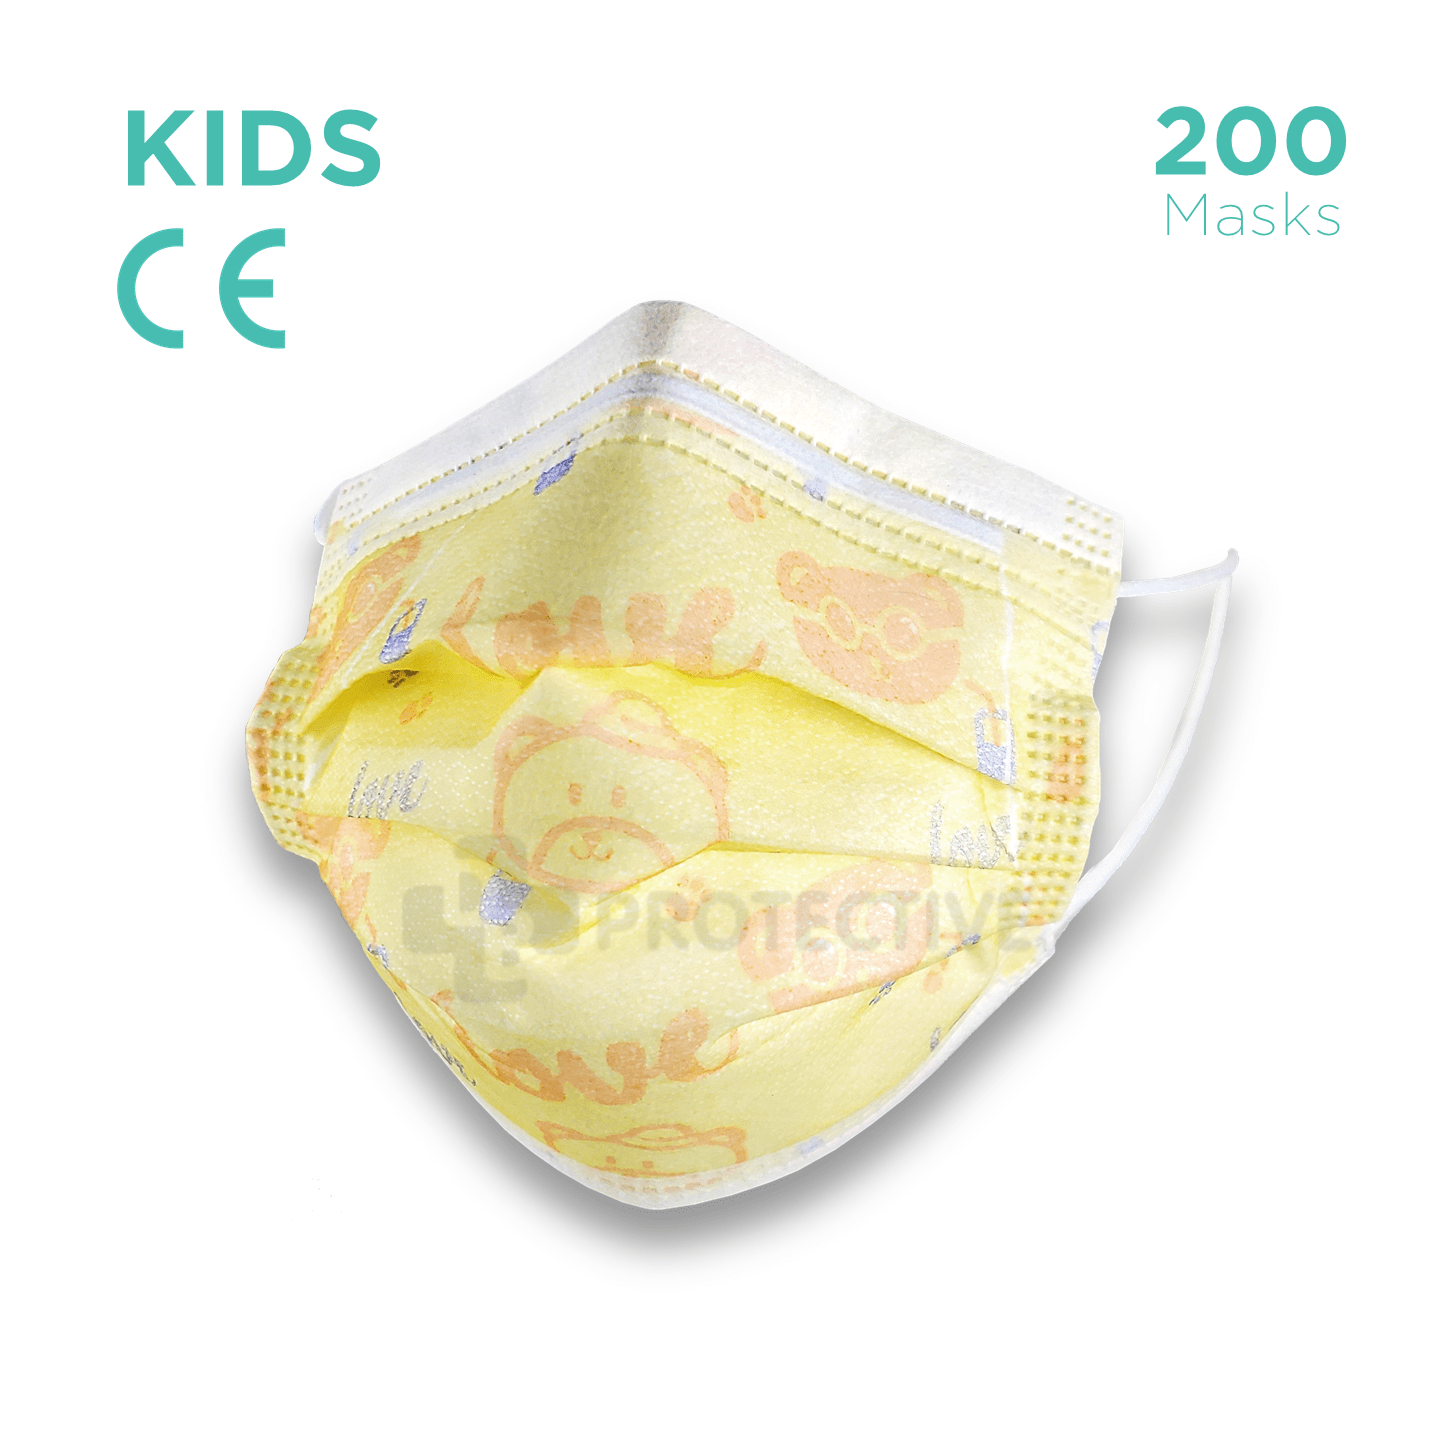 Kids Disposable face Mask Kids - 100 3 Ply Disposable Face Masks - USA Medical Supply - DB Protective